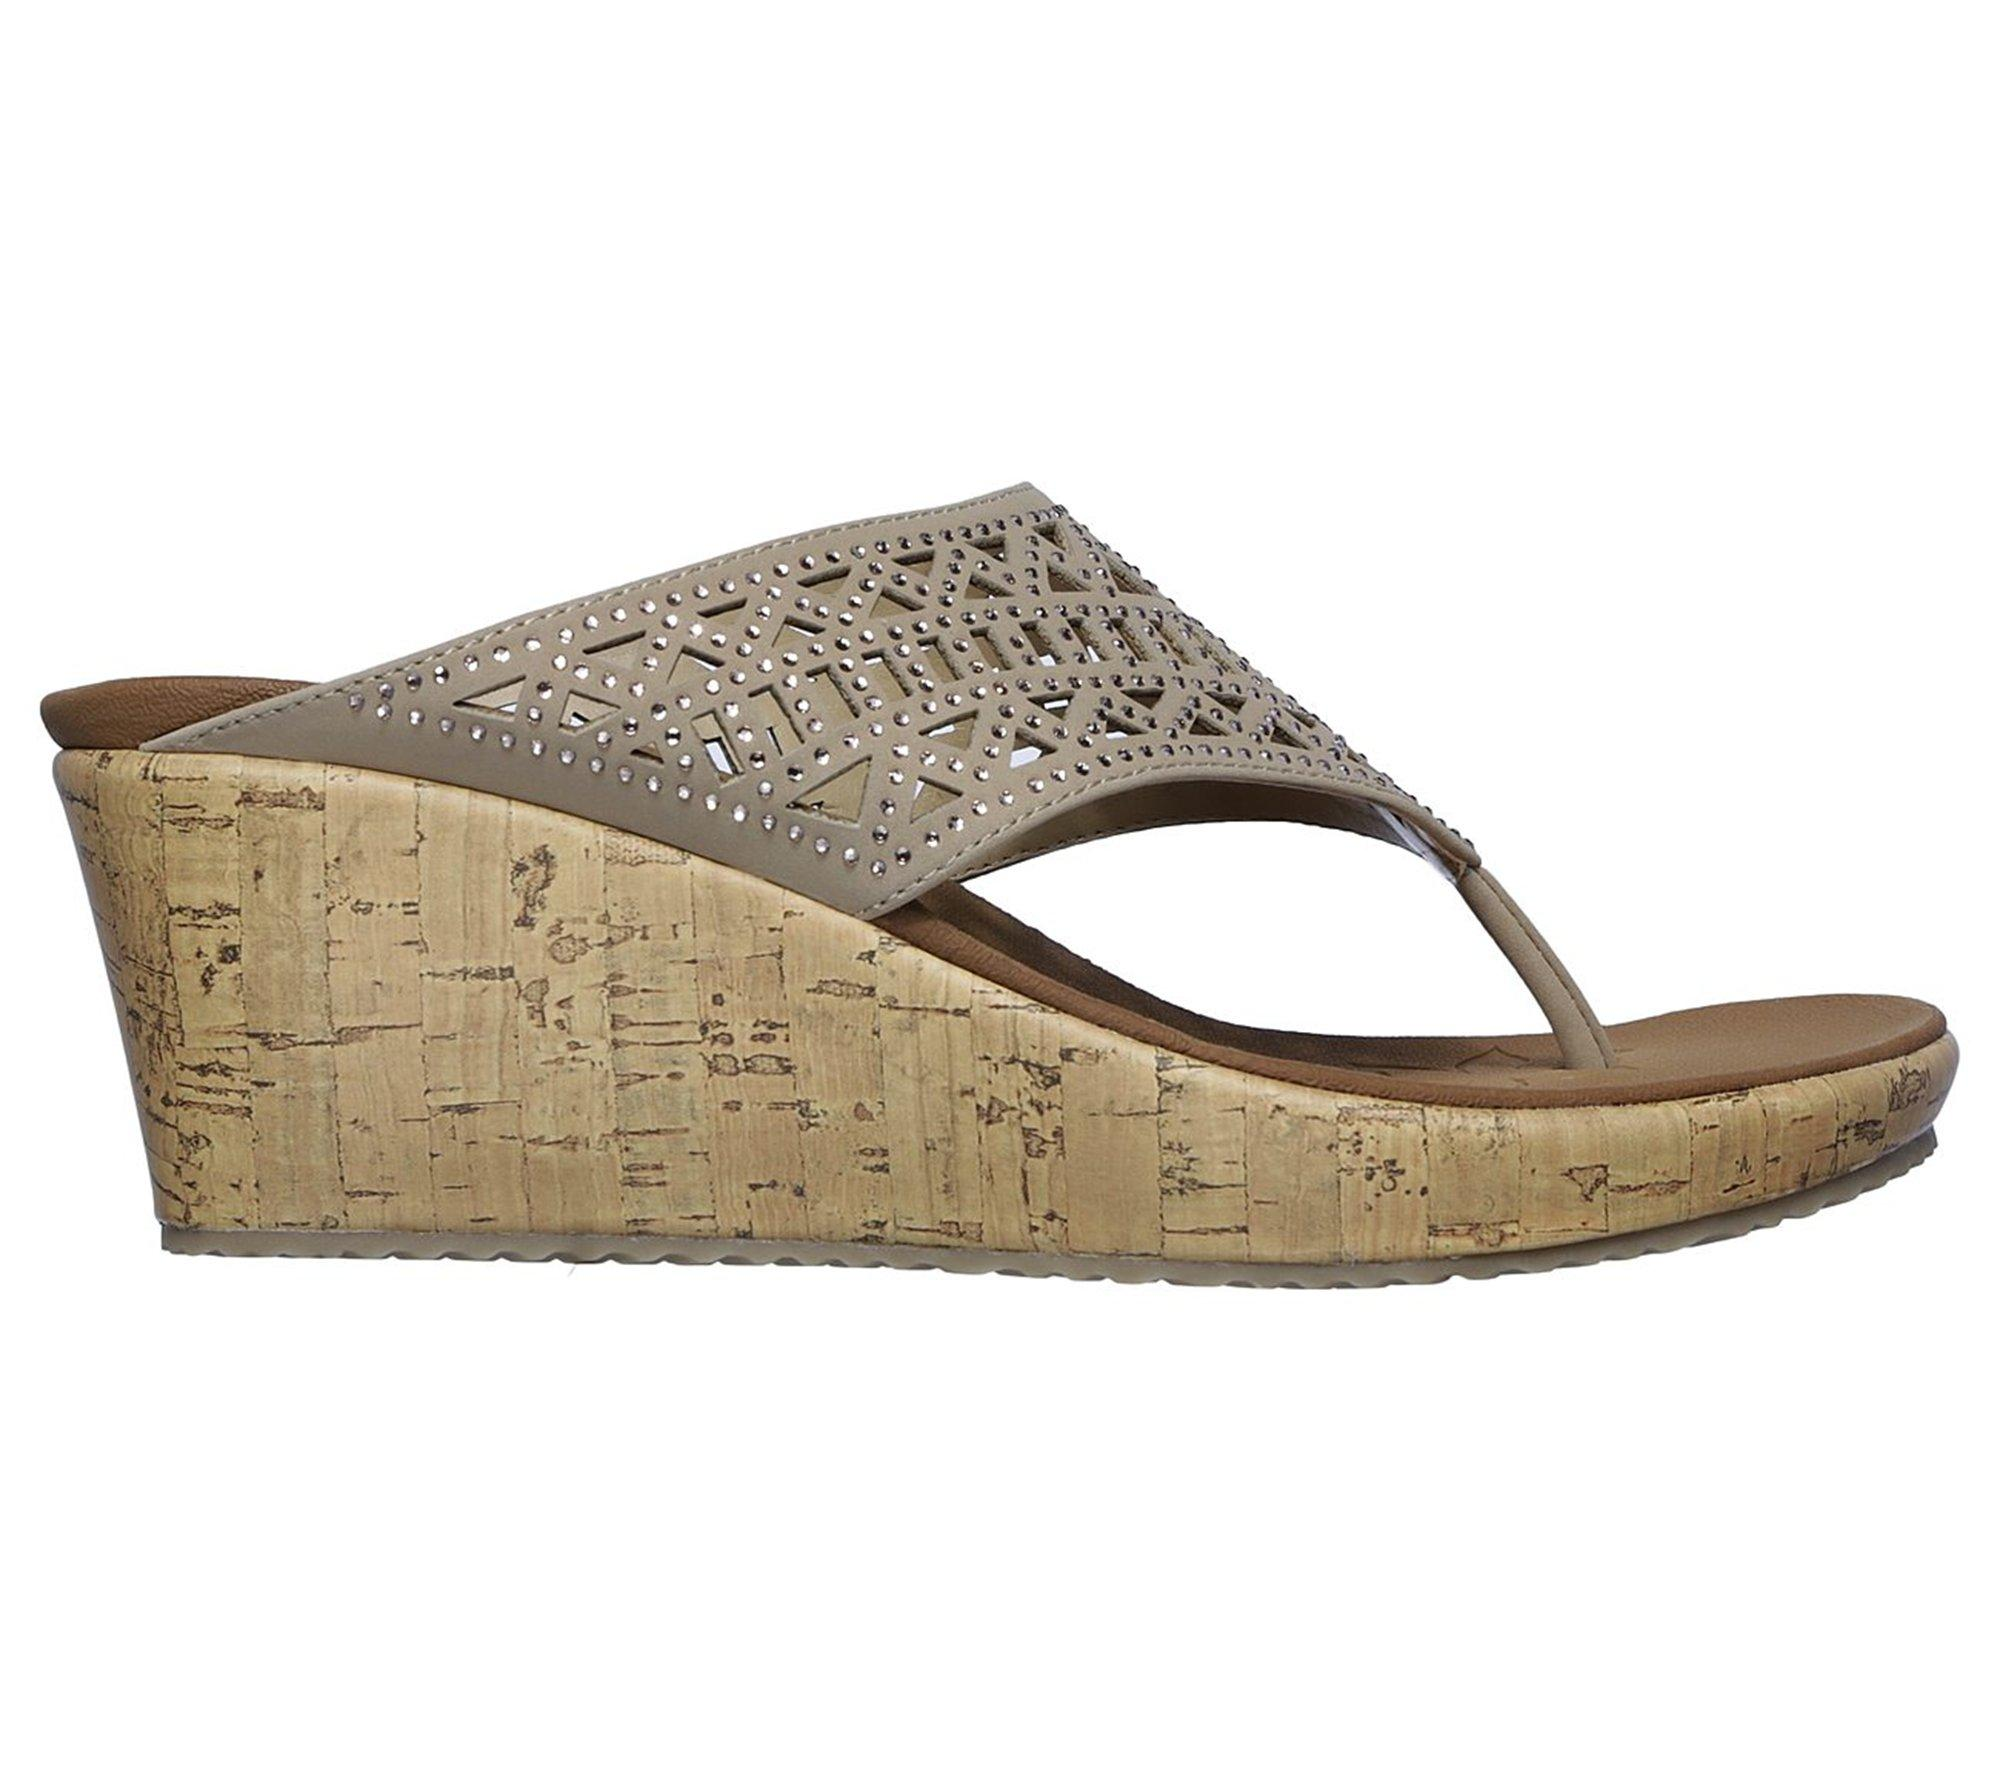 5bdccdf1aff Lyst - Skechers Beverlee - Summer Visit in Natural